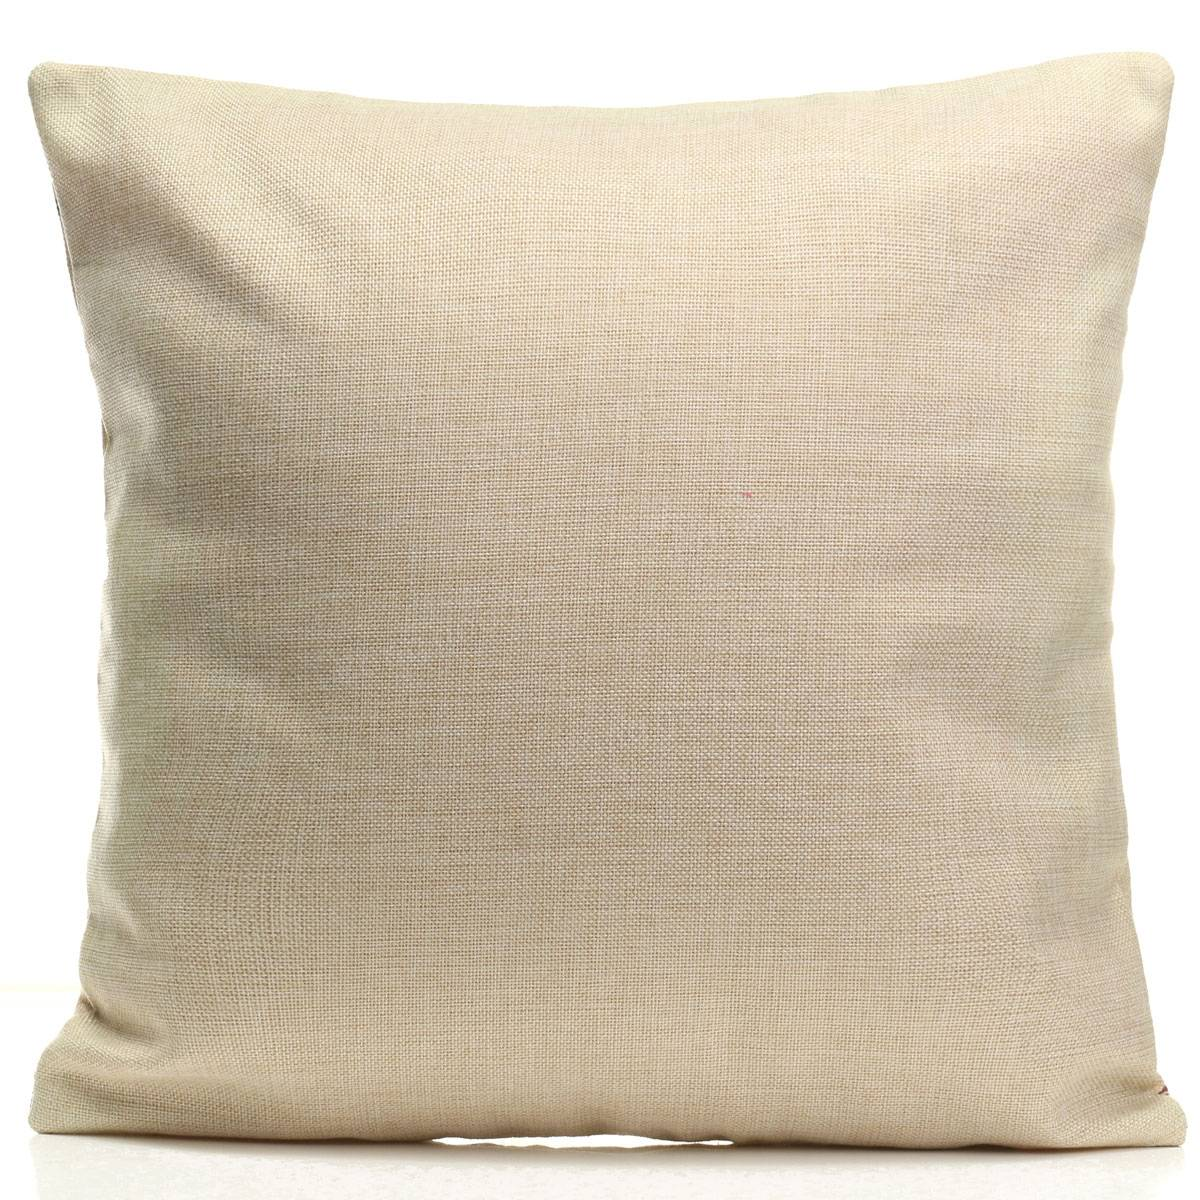 Keyes Decorative Pillow : Vintage Keys Cotton Linen Throw Pillow Case Sofa Office Cushion Cover Home Decor at Banggood ...